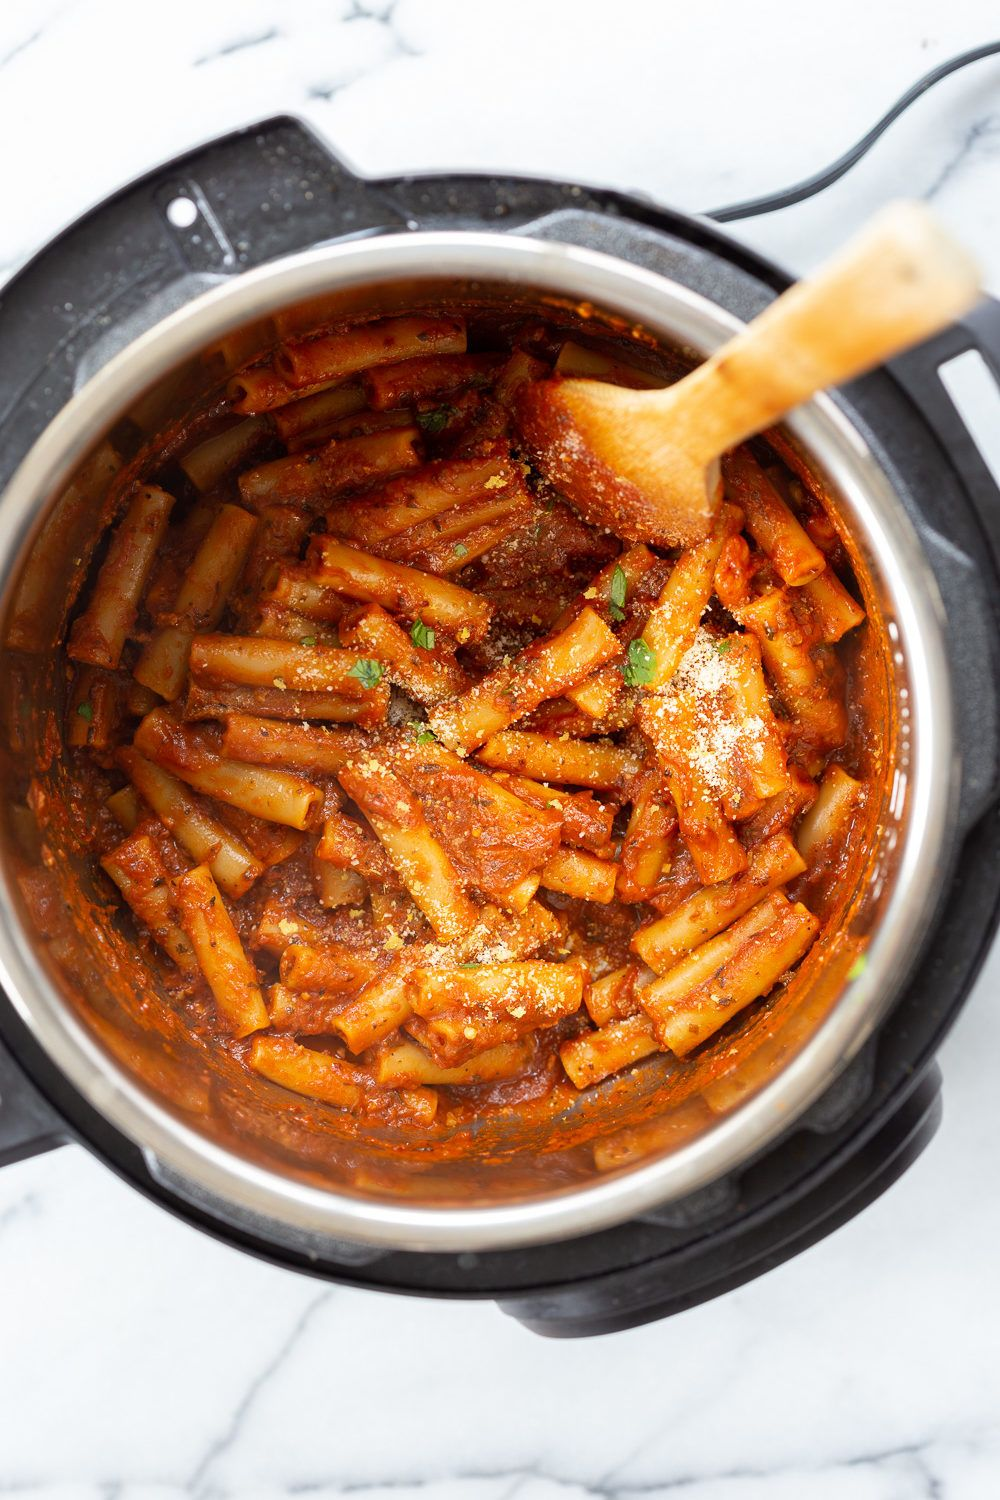 Instant Pot Ziti With Tomato Sauce Date Night Quick Pasta With Ziti Sprinkled With Vegan Parm Vegan Instant Pot Recipes Quick Pasta Recipes How To Cook Pasta